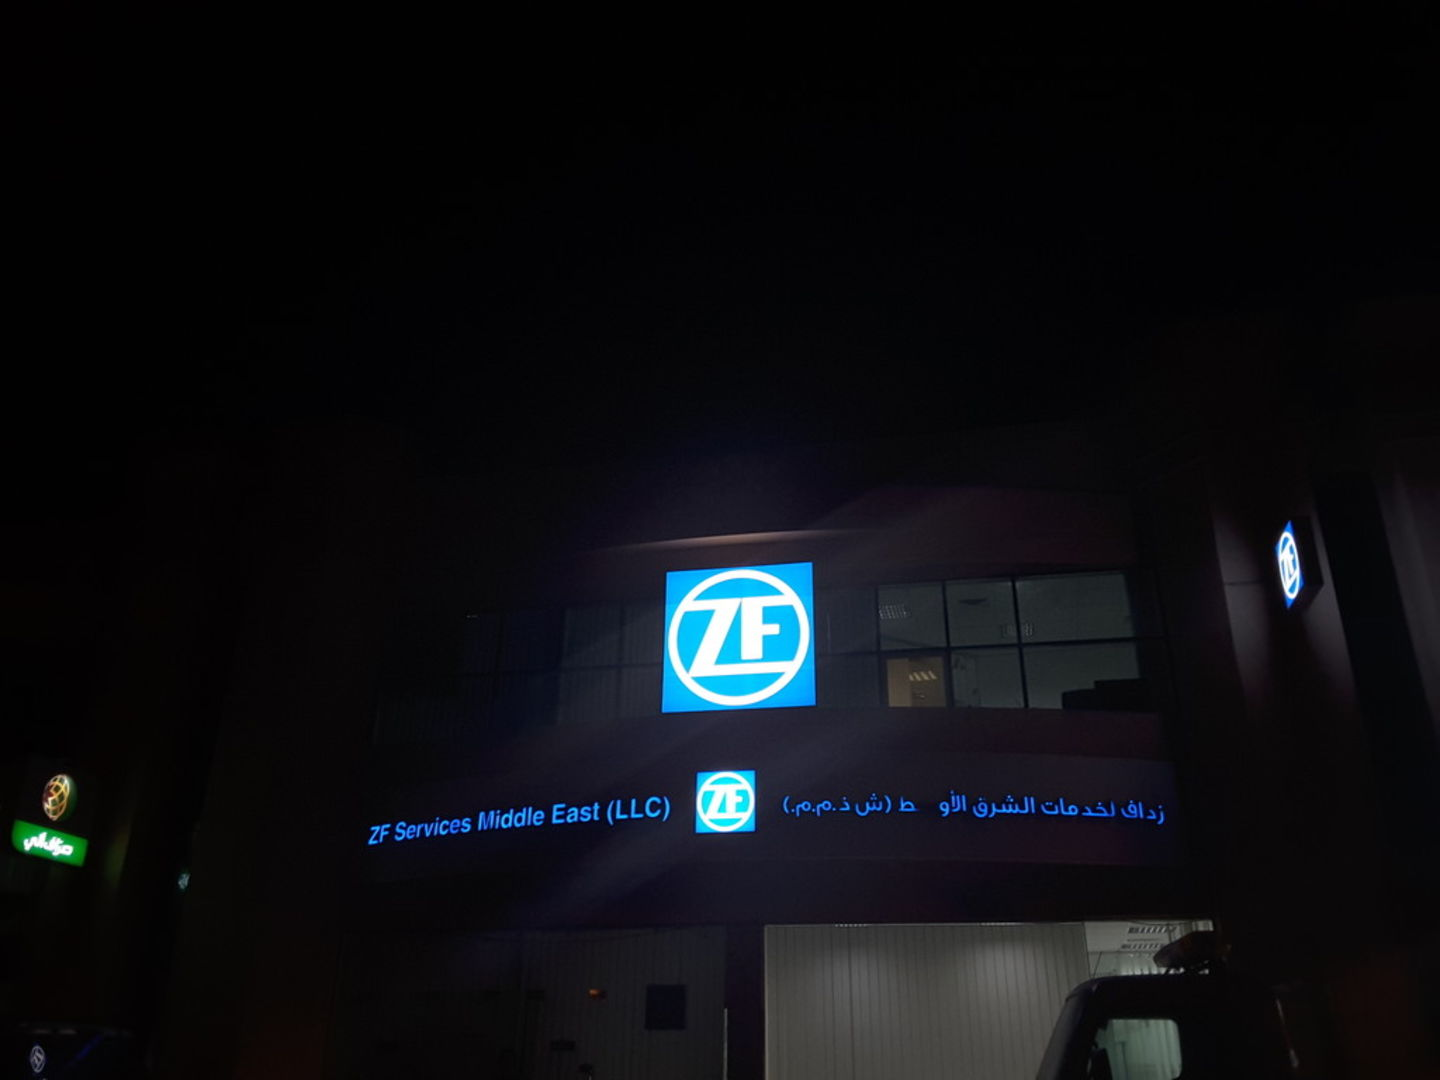 Walif-business-zf-services-middle-east